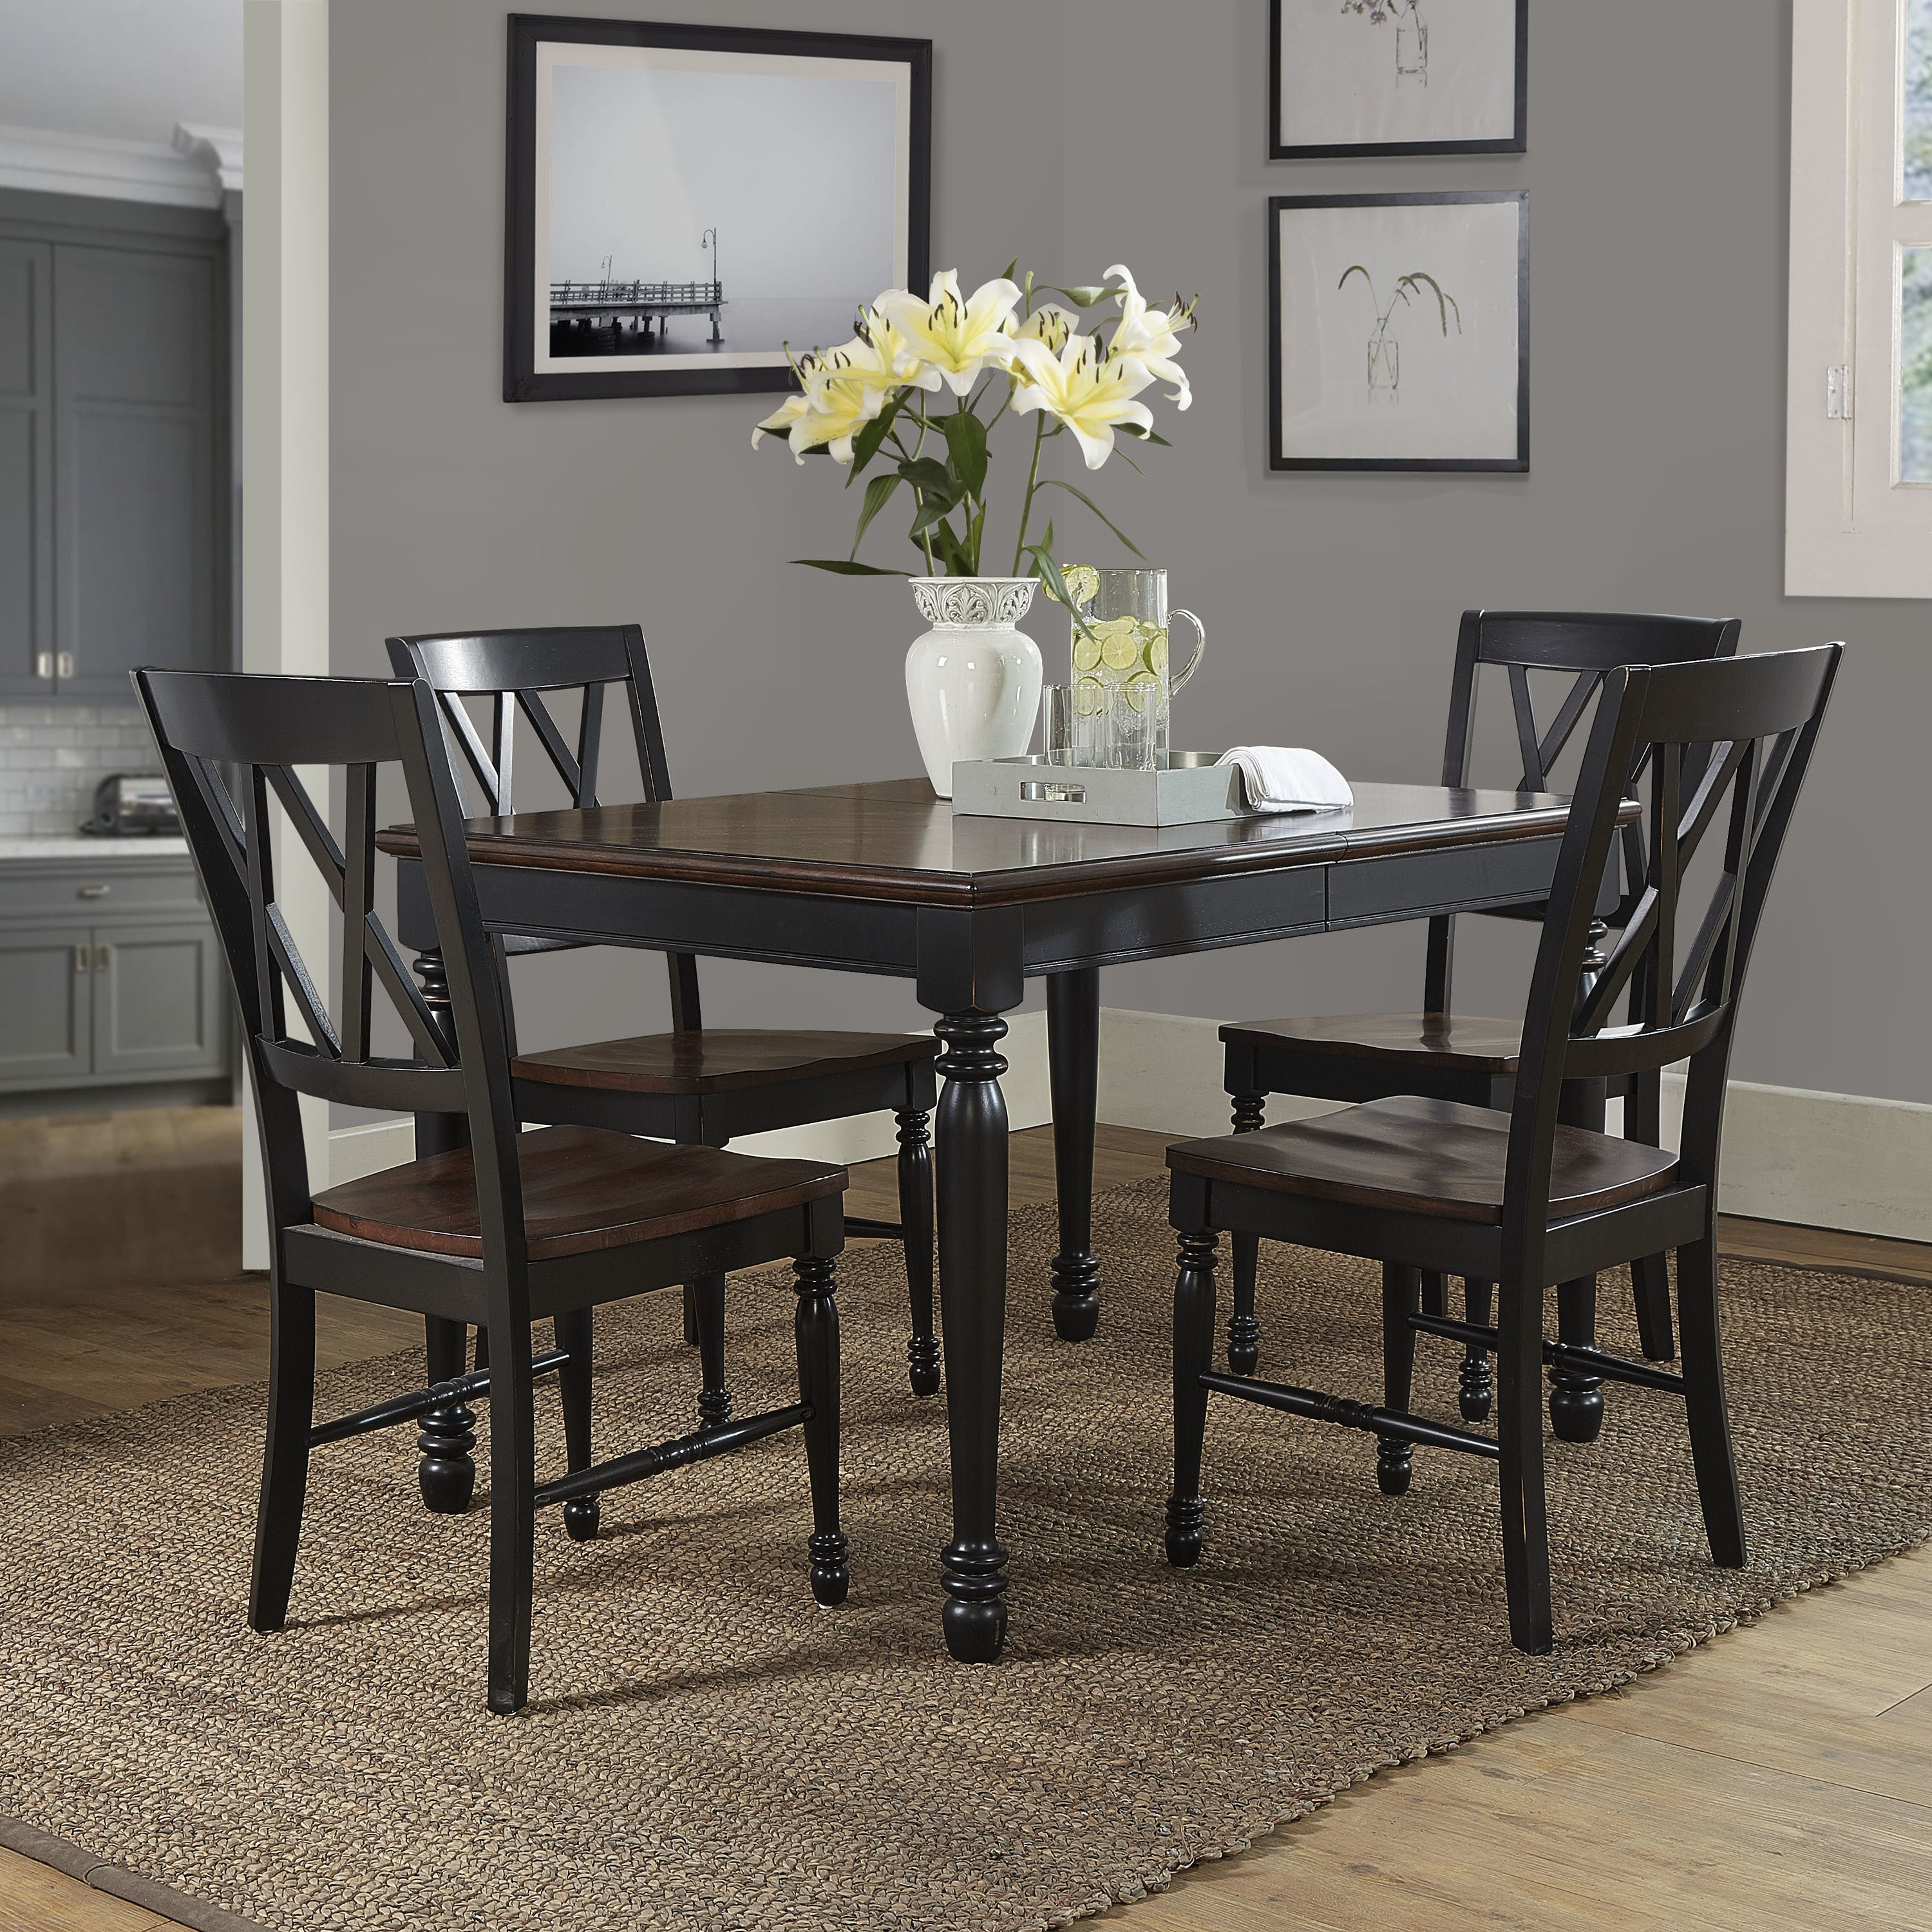 Shelby Black Wood 5 Piece Dining Set In Most Recent Laconia 7 Pieces Solid Wood Dining Sets (Set Of 7) (View 19 of 20)